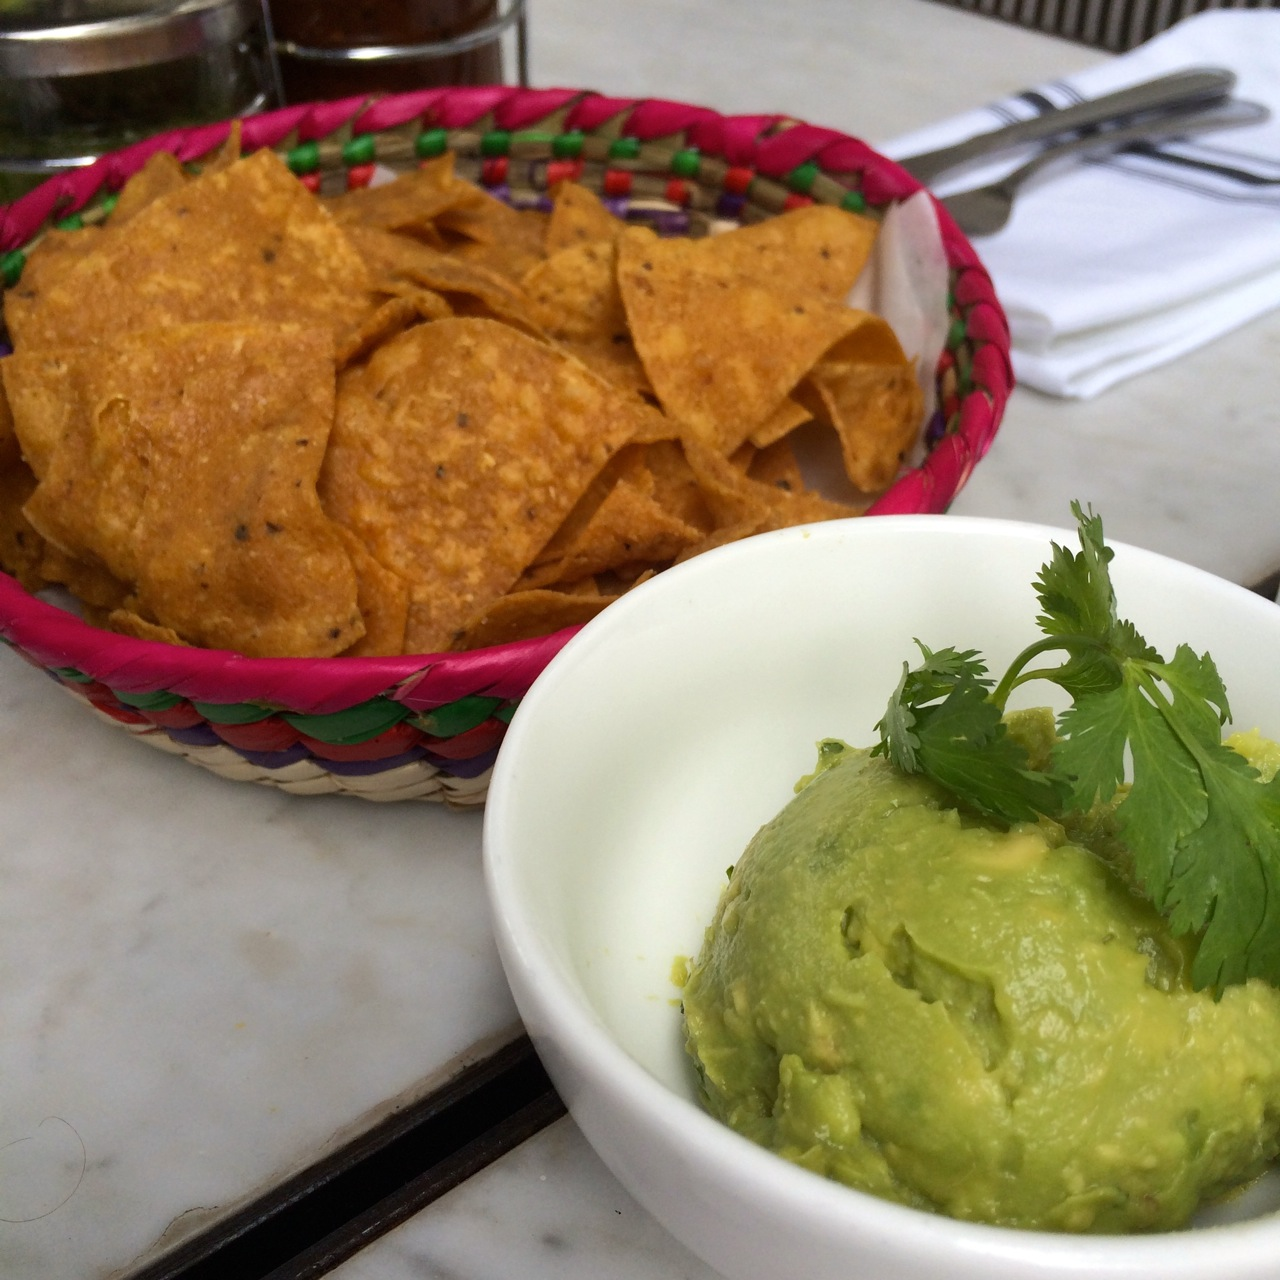 https://i1.wp.com/fatgayvegan.com/wp-content/uploads/2015/06/guacamole.jpg?fit=1280%2C1280